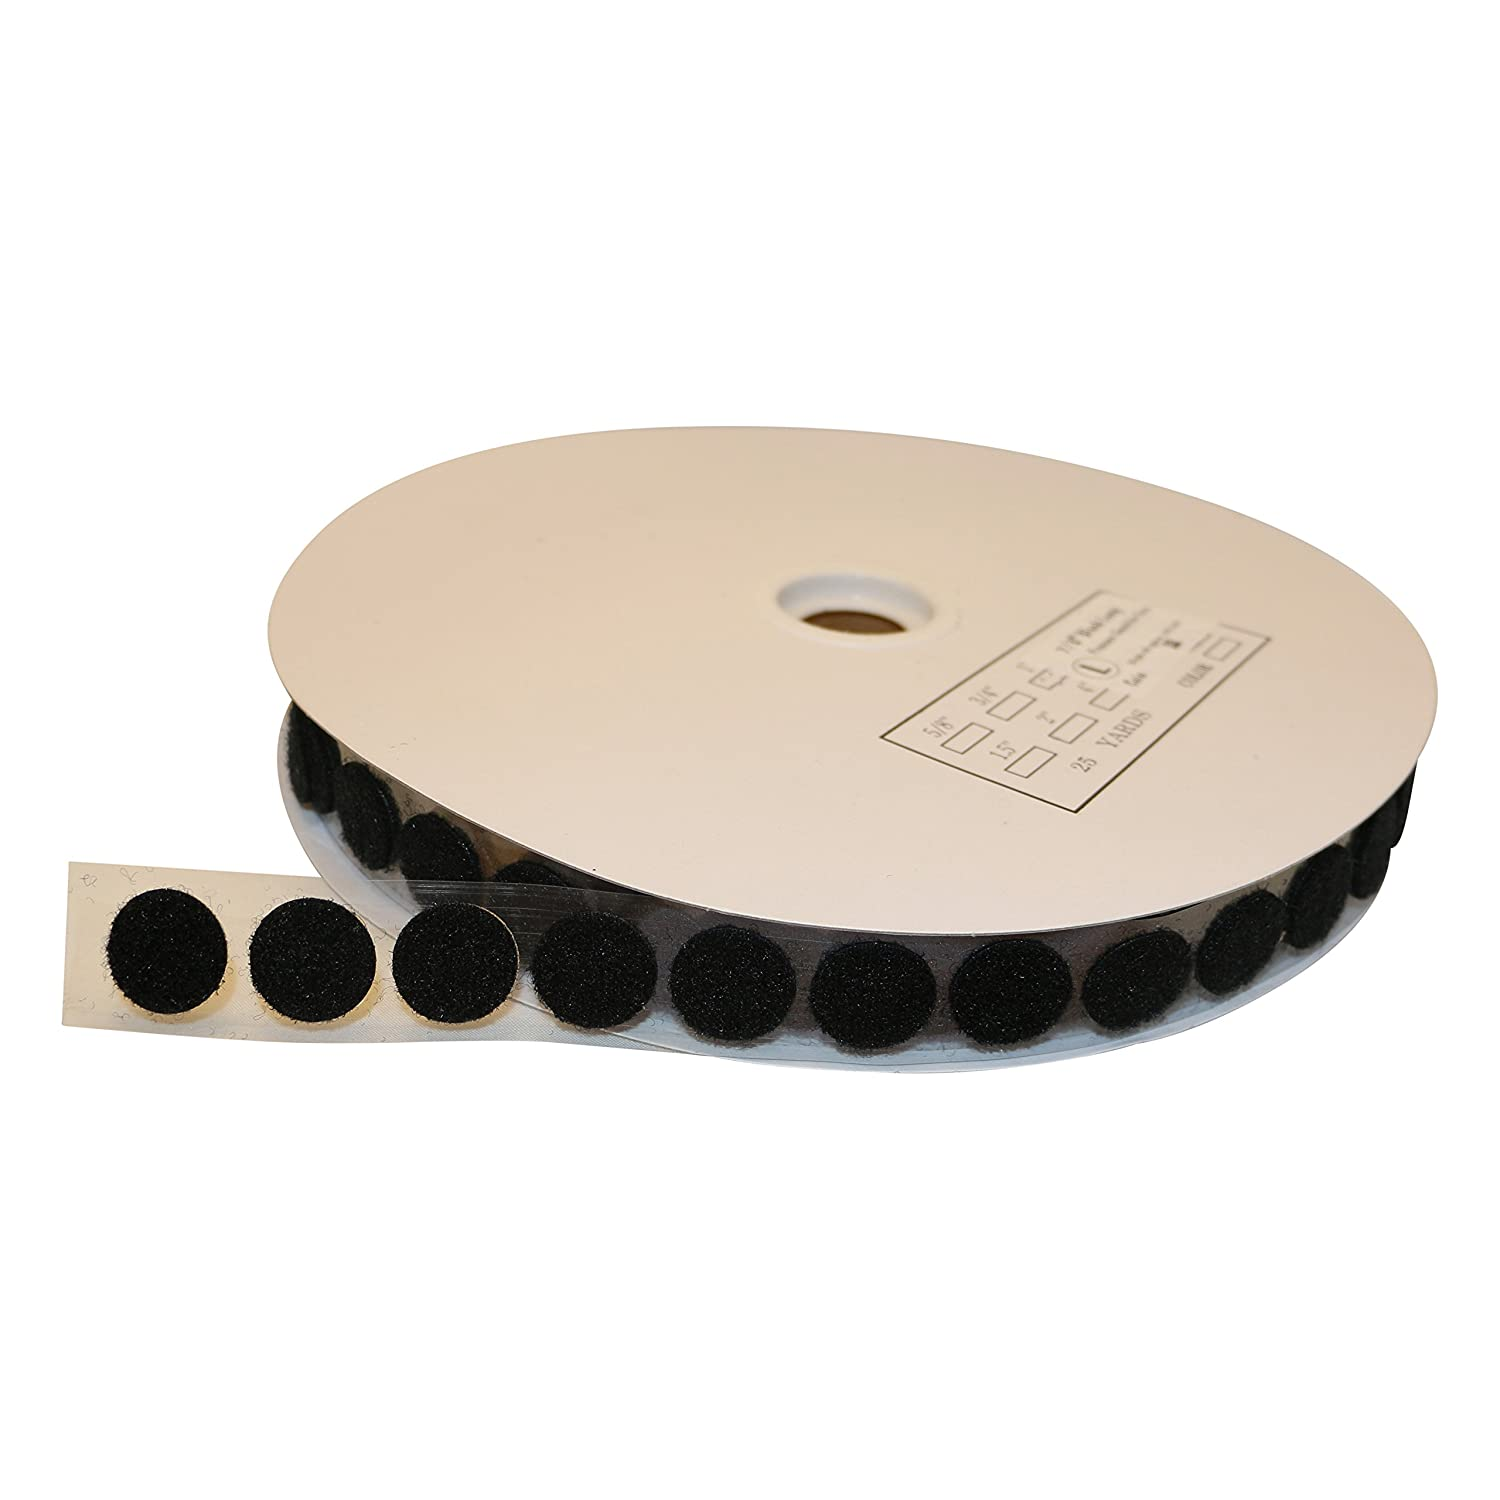 //50 coins Black 50 coins//roll FindTape HL74-C Adhesive Loop-Side Only: 3//4 in diameter